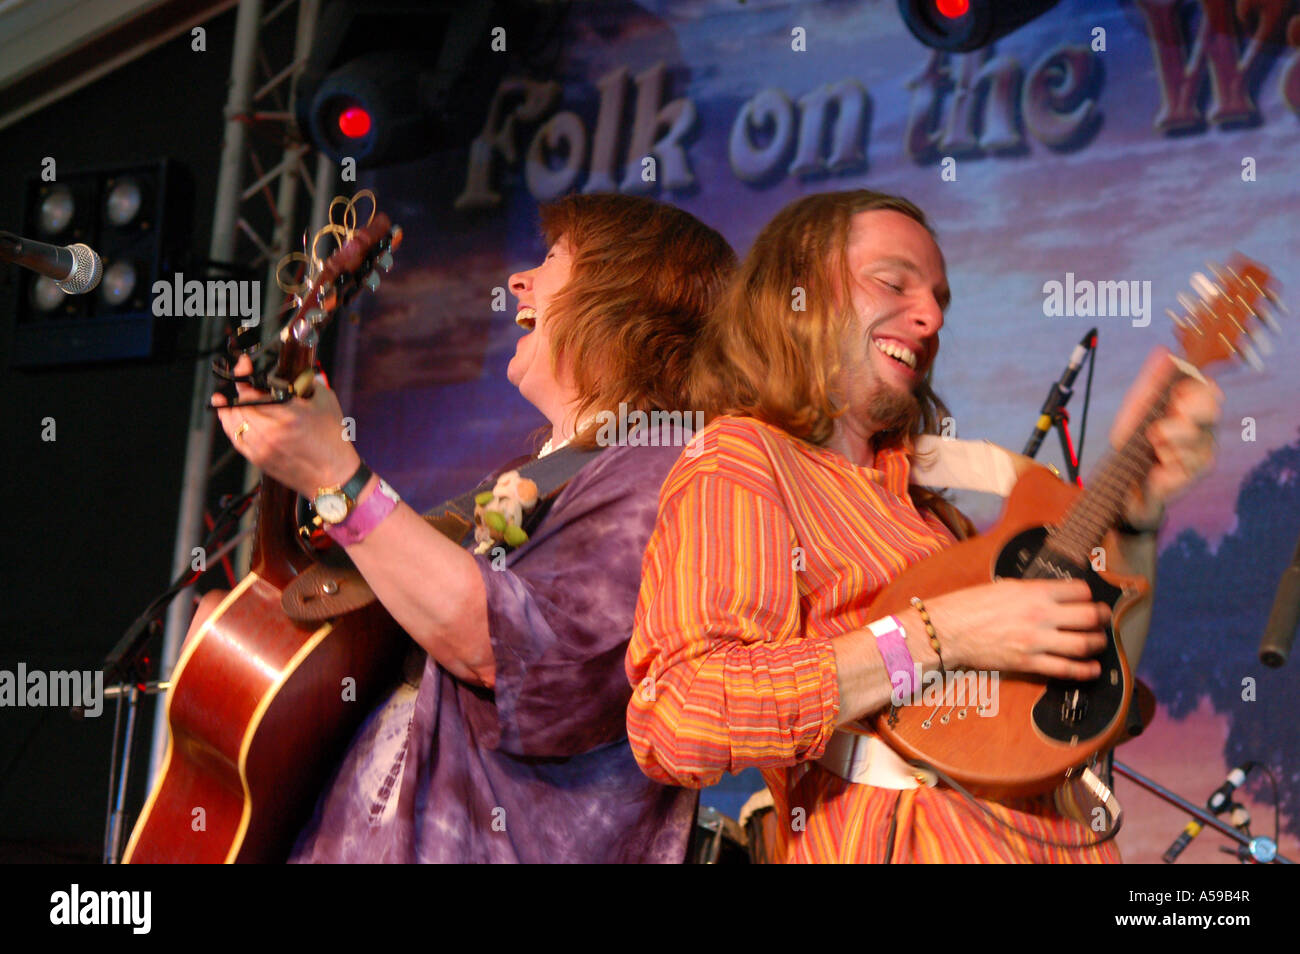 Magna Carta on stage at 'Folk on the Water' Gloucestershire June 2006 - Stock Image